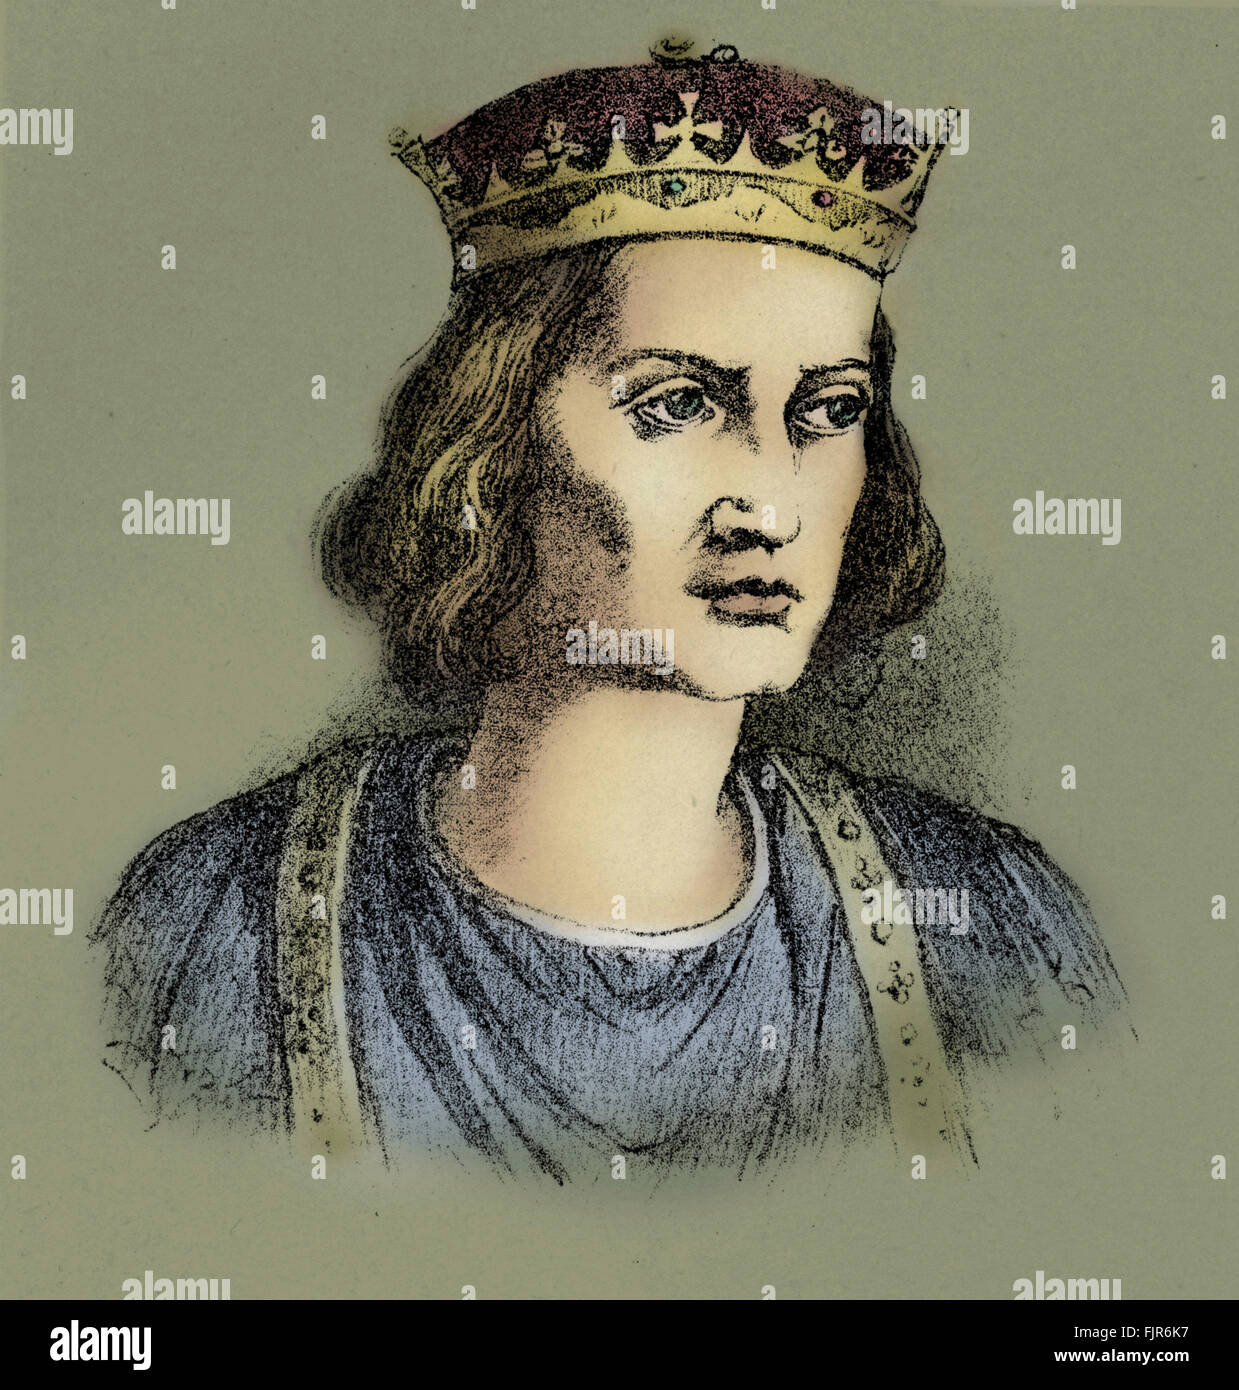 Stephen, often referred to in history as Stephen of Blois, ( 1096 – 1154), was the last Norman King of England. - Stock Image